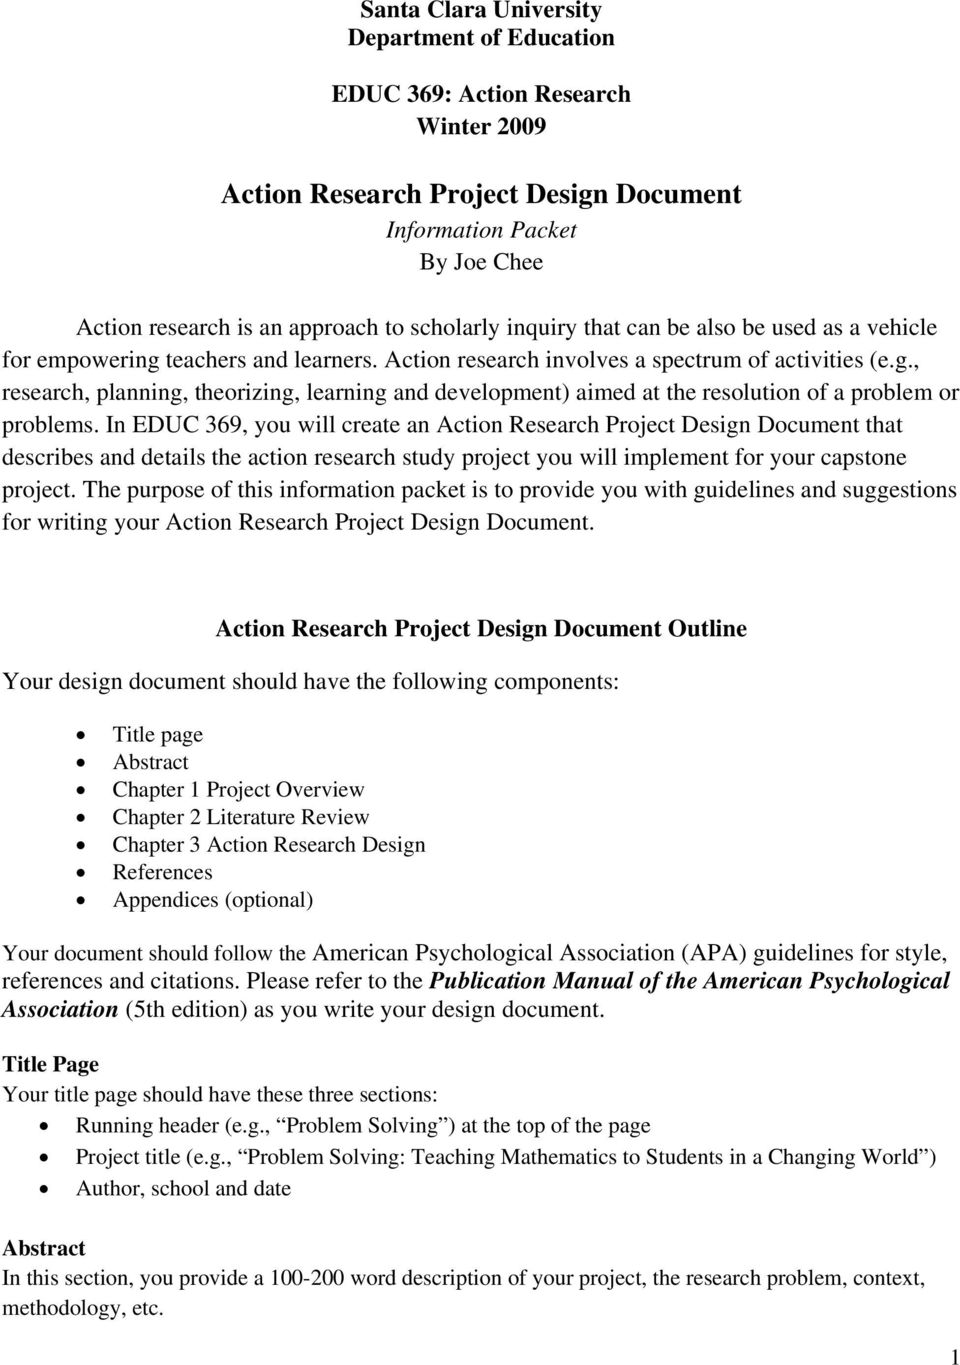 In EDUC 369, you will create an Action Research Project Design Document that describes and details the action research study project you will implement for your capstone project.